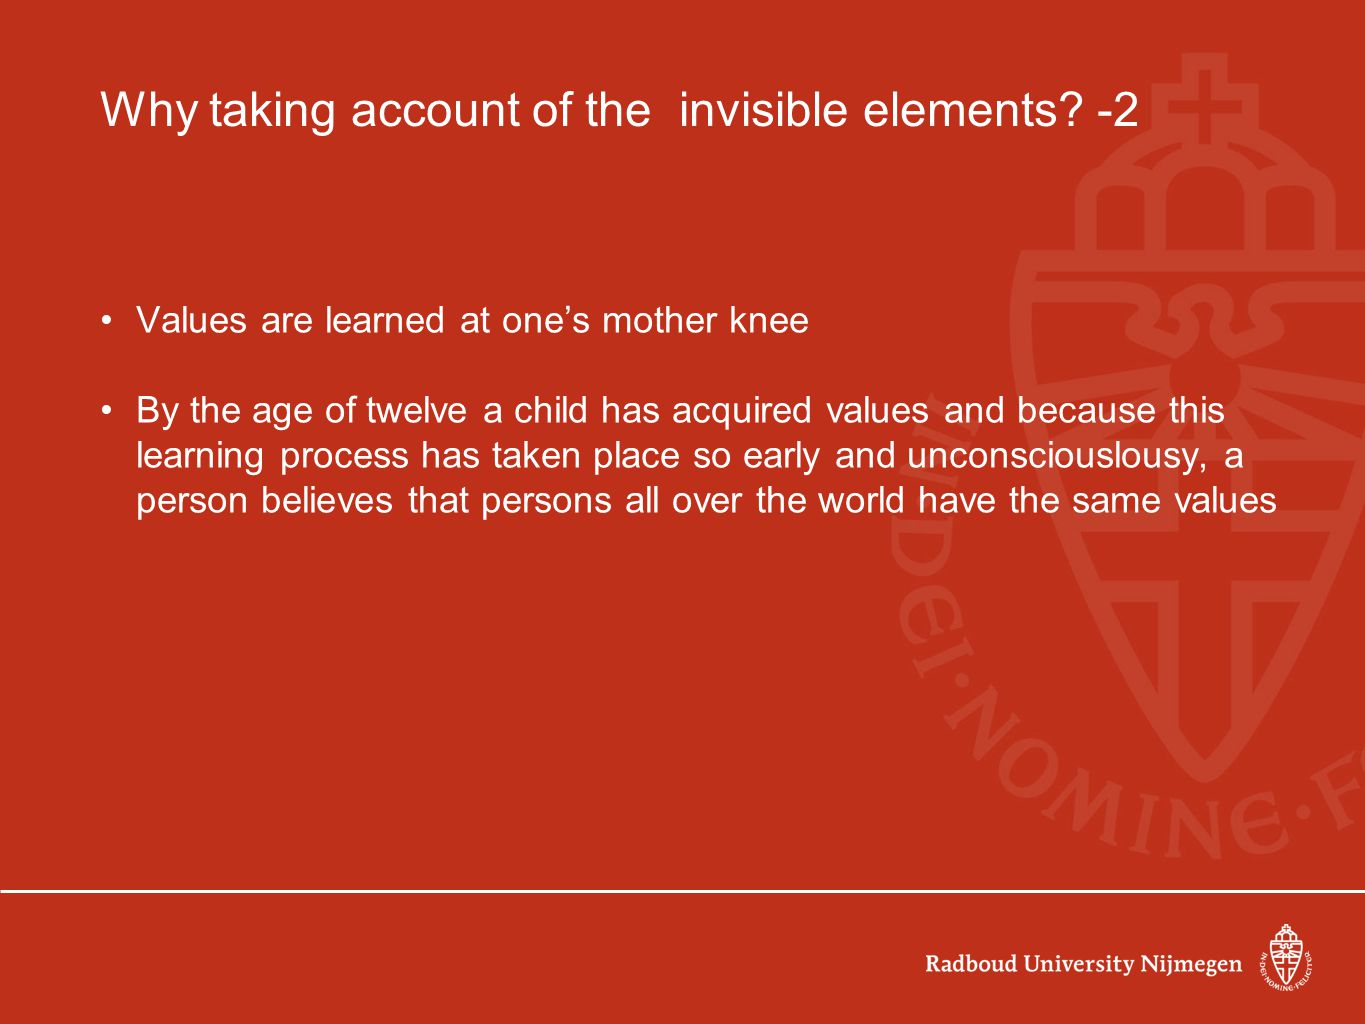 Why taking account of the invisible elements? -2 Values are learned at one's mother knee By the age of twelve a child has acquired values and because